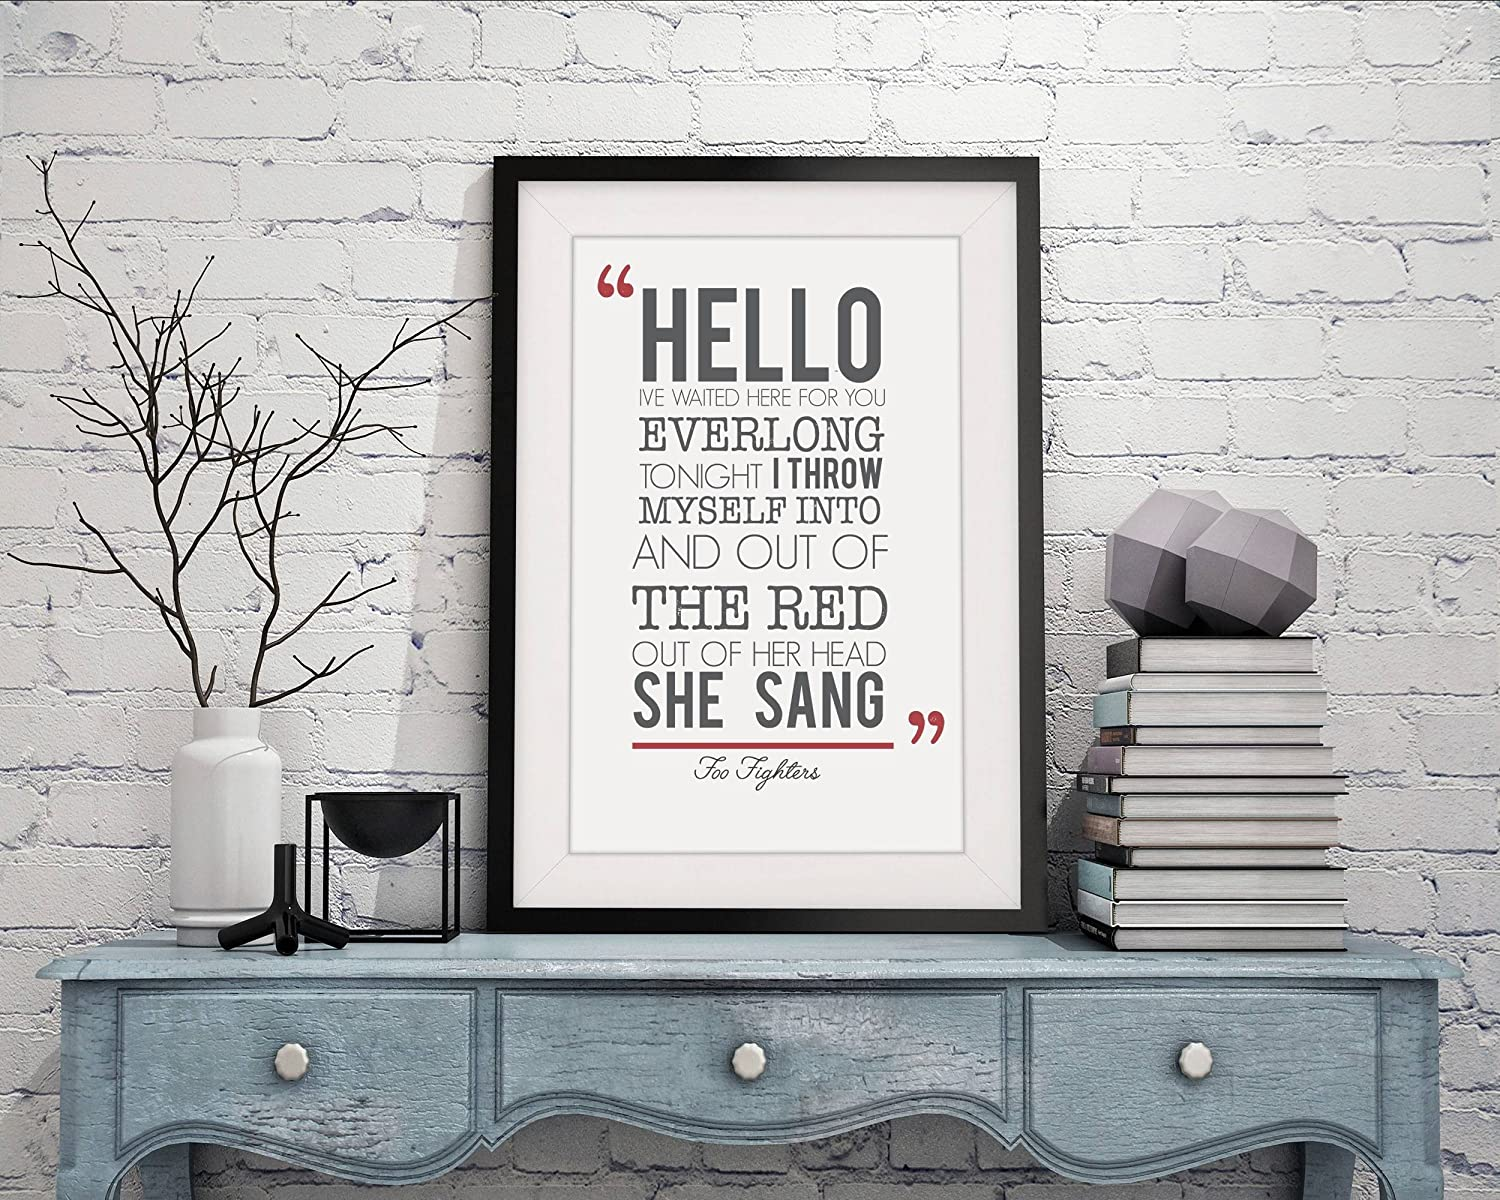 Amazon Foo Fighters Everlong Song Lyrics Framed A4 Print And 12x10 Glazed Frame With Mount Gift Valentines Day Christmas Anniversary Wedding First